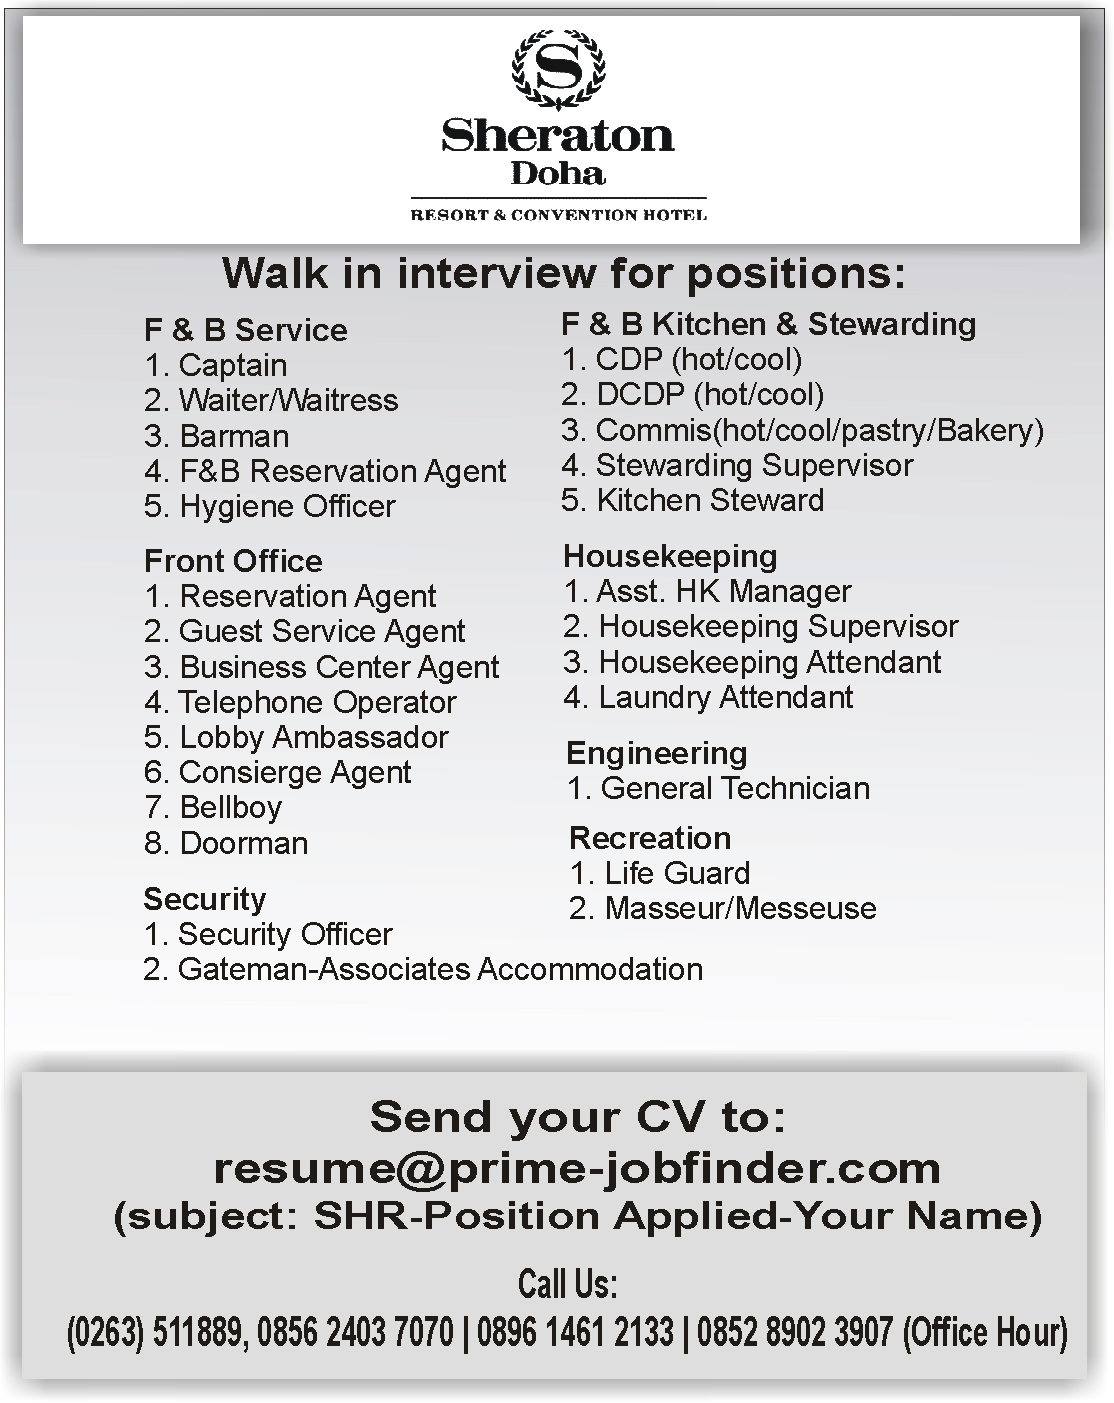 Charming Housekeeping Lobby Attendant Resume Images - Professional ...